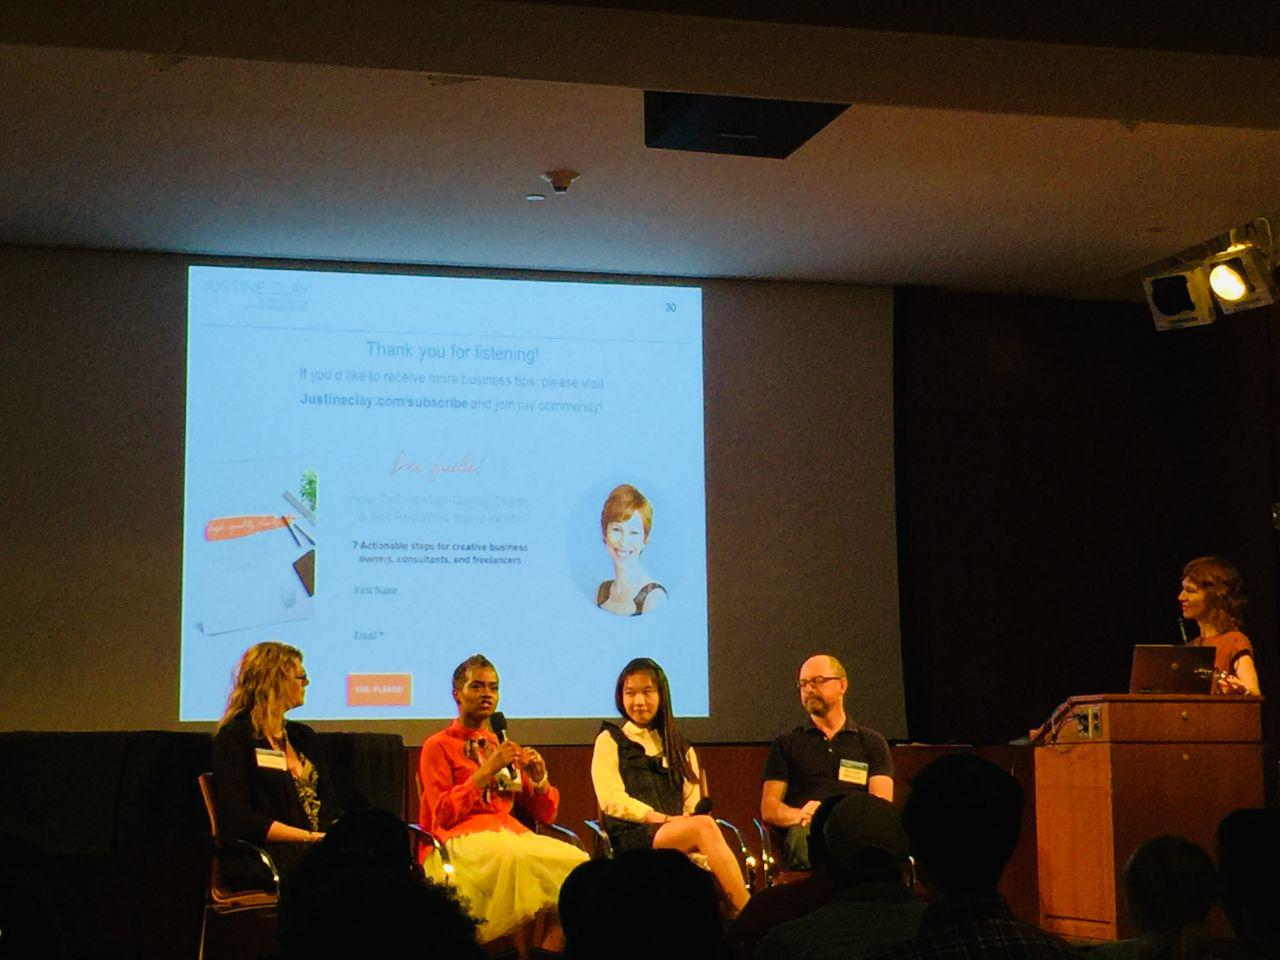 OBS Faculty Attends Event for Small Businesses: Succeeding as a Creative Entrepreneur in NYC